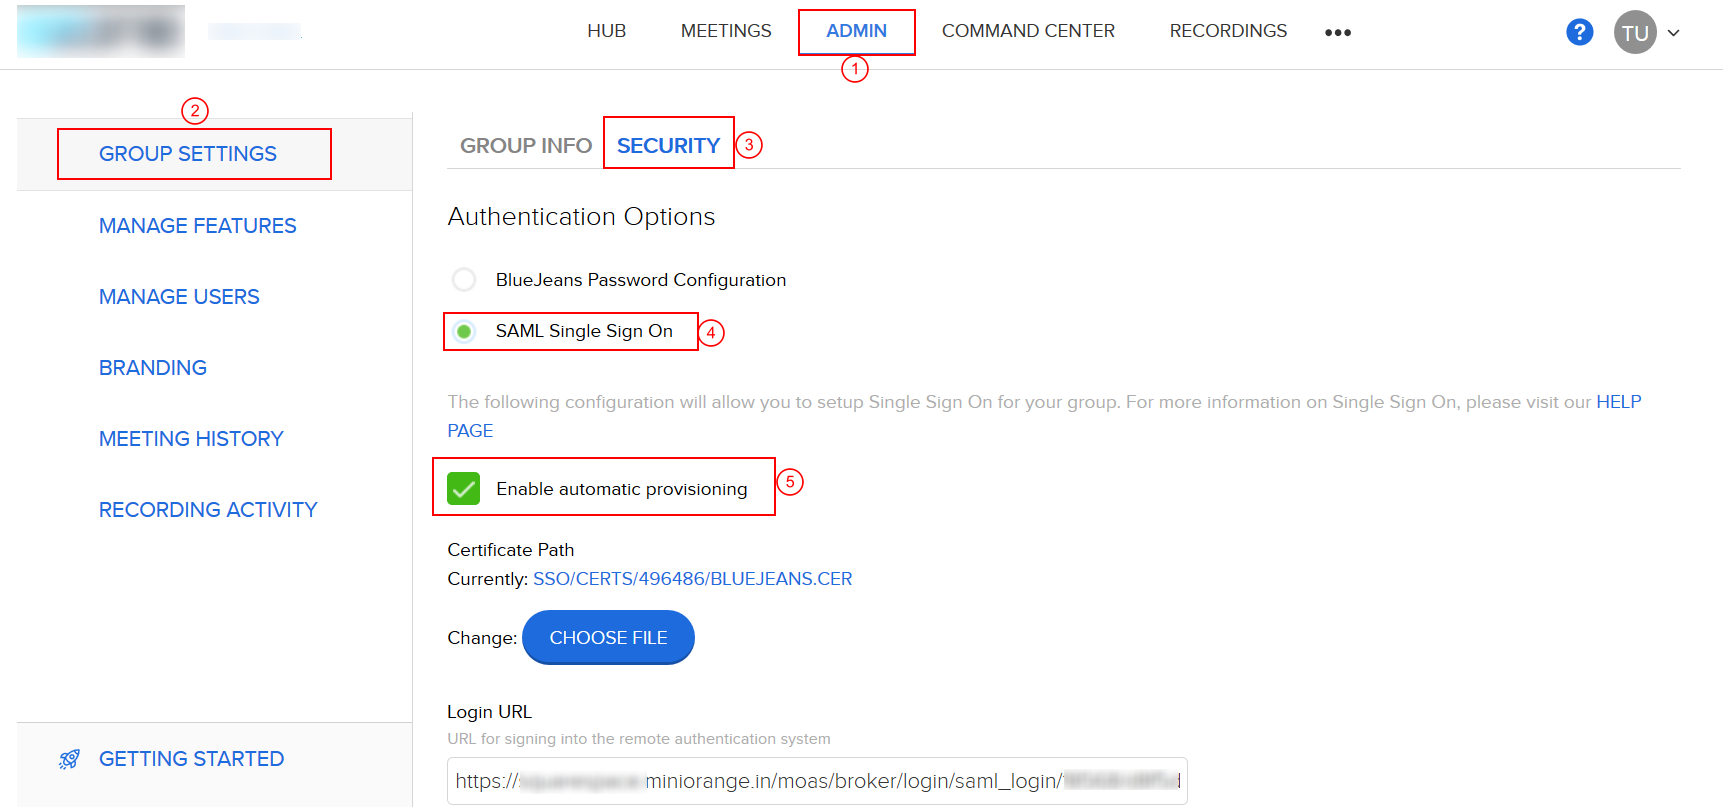 BlueJeans two factor authentication (2FA) configuration